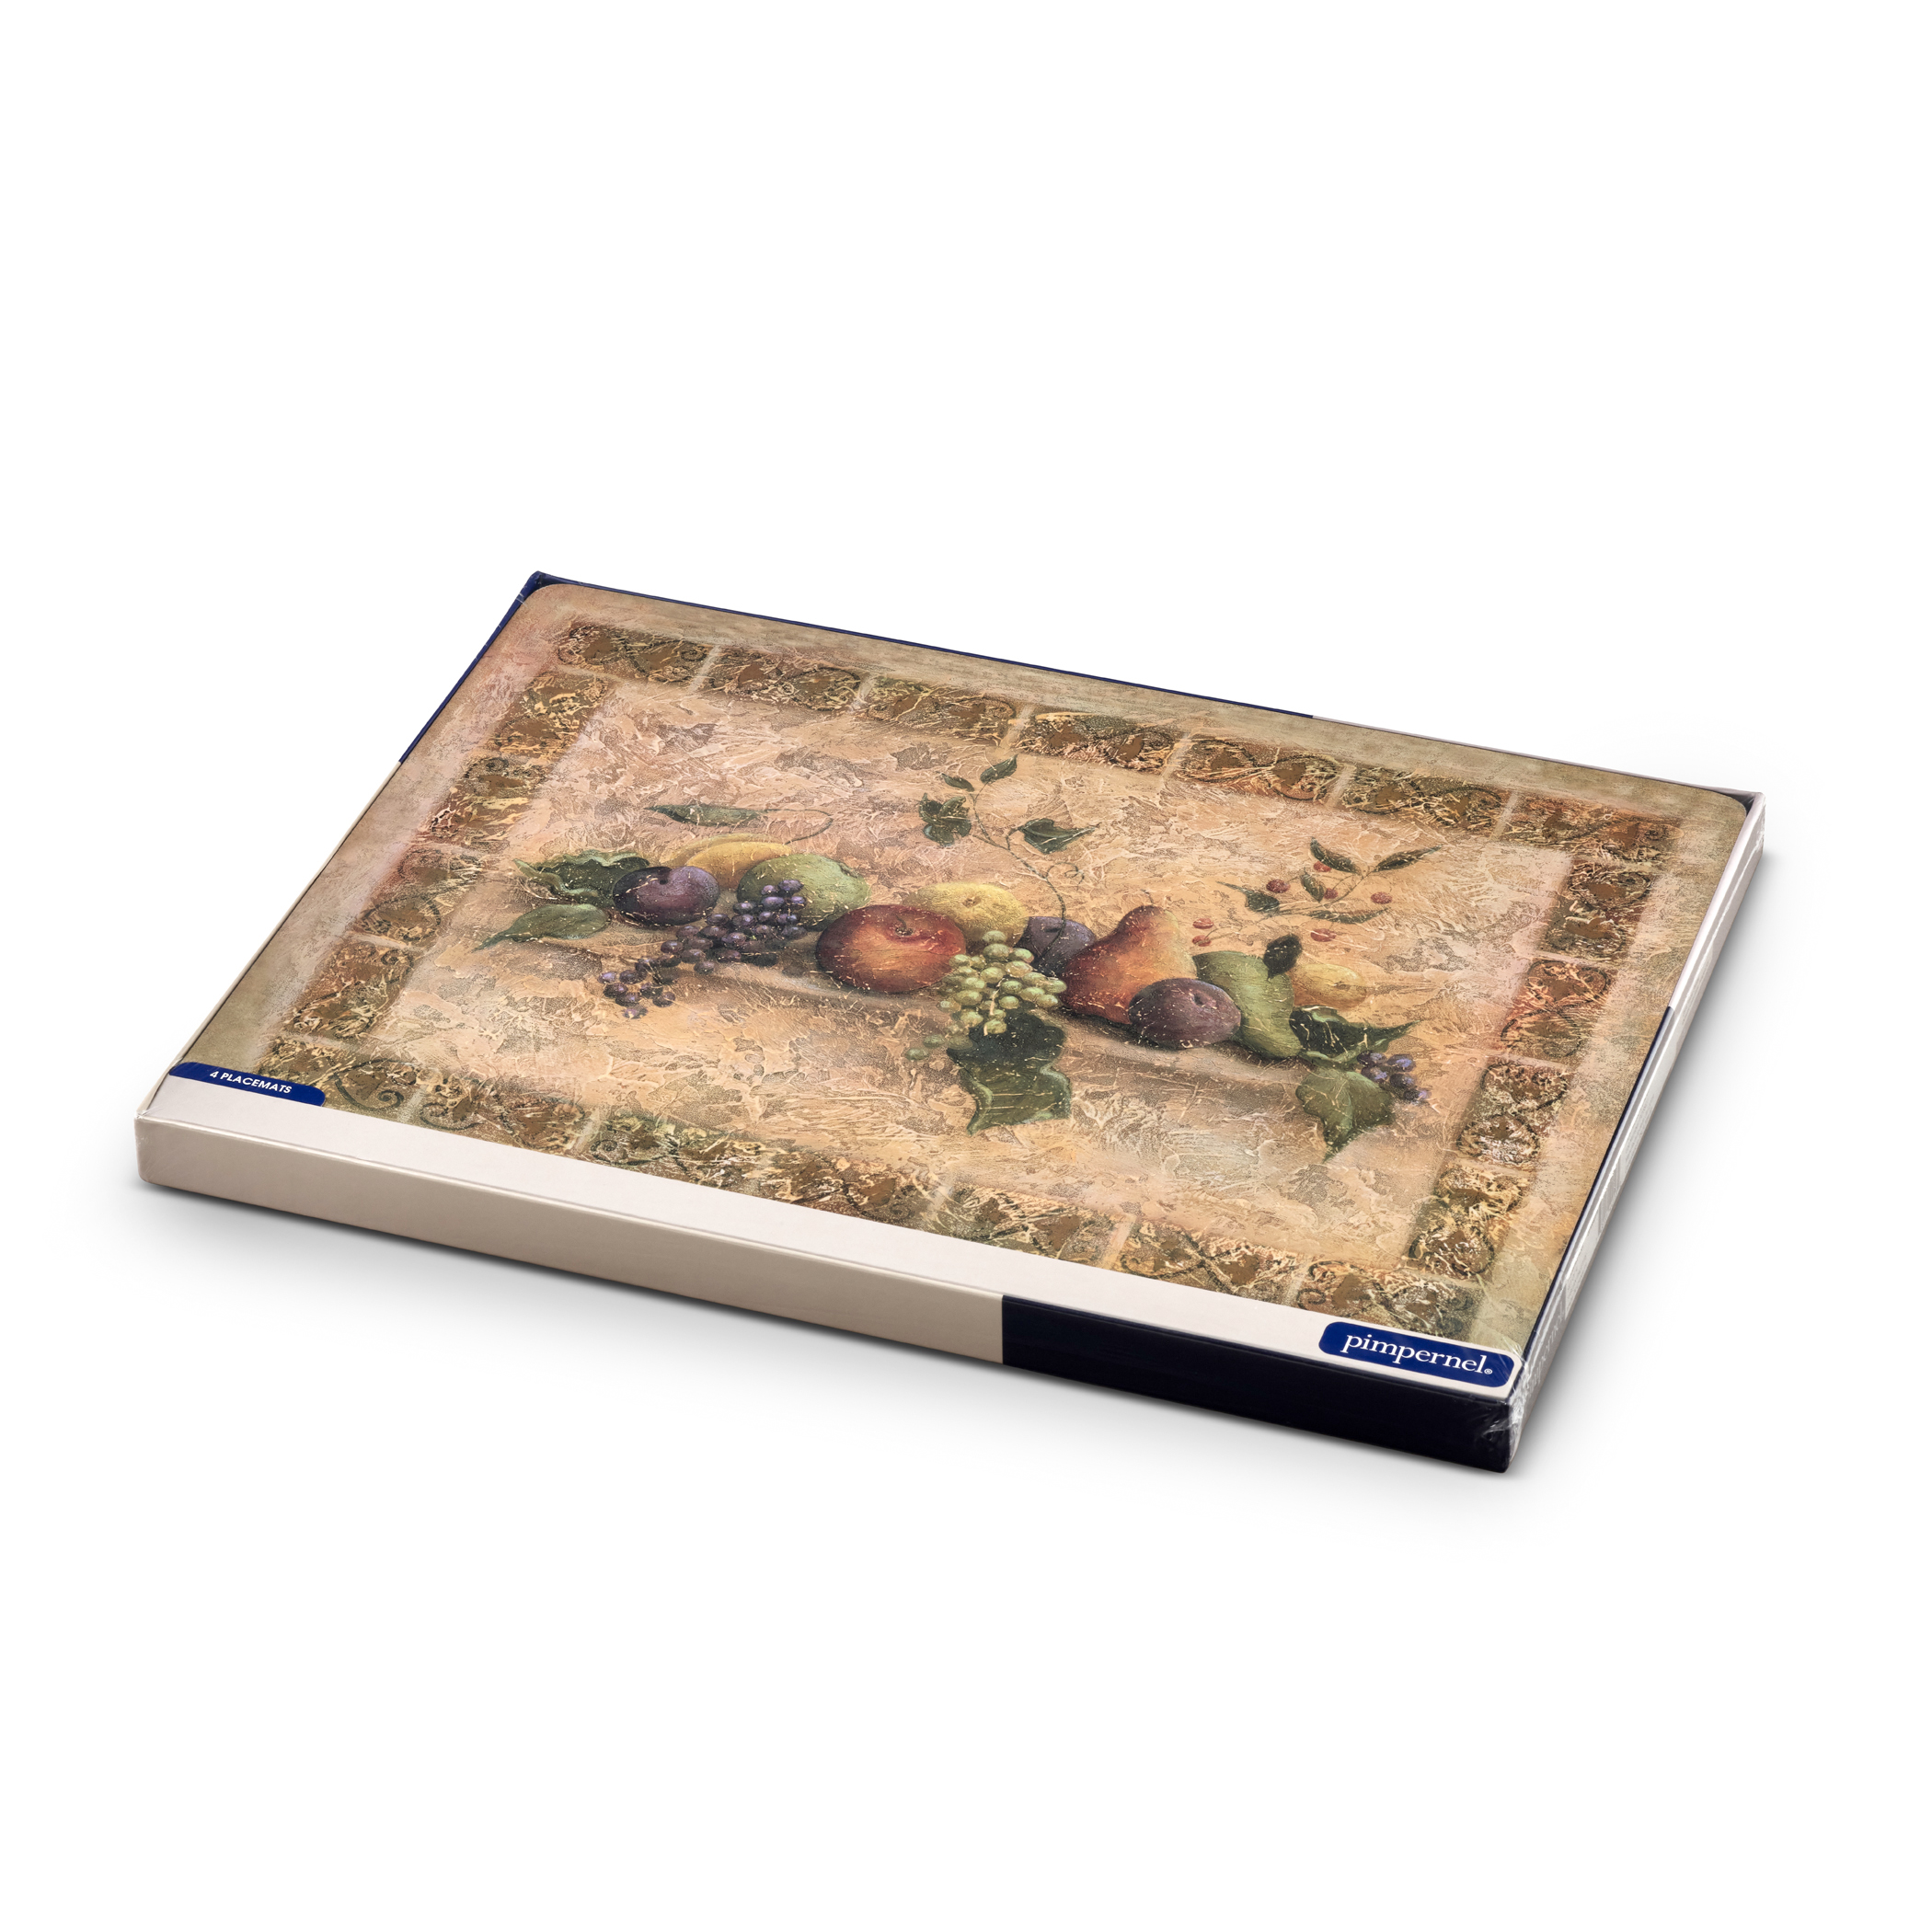 Pimpernel Tuscan Palette Placemats Set of 4 image number 4